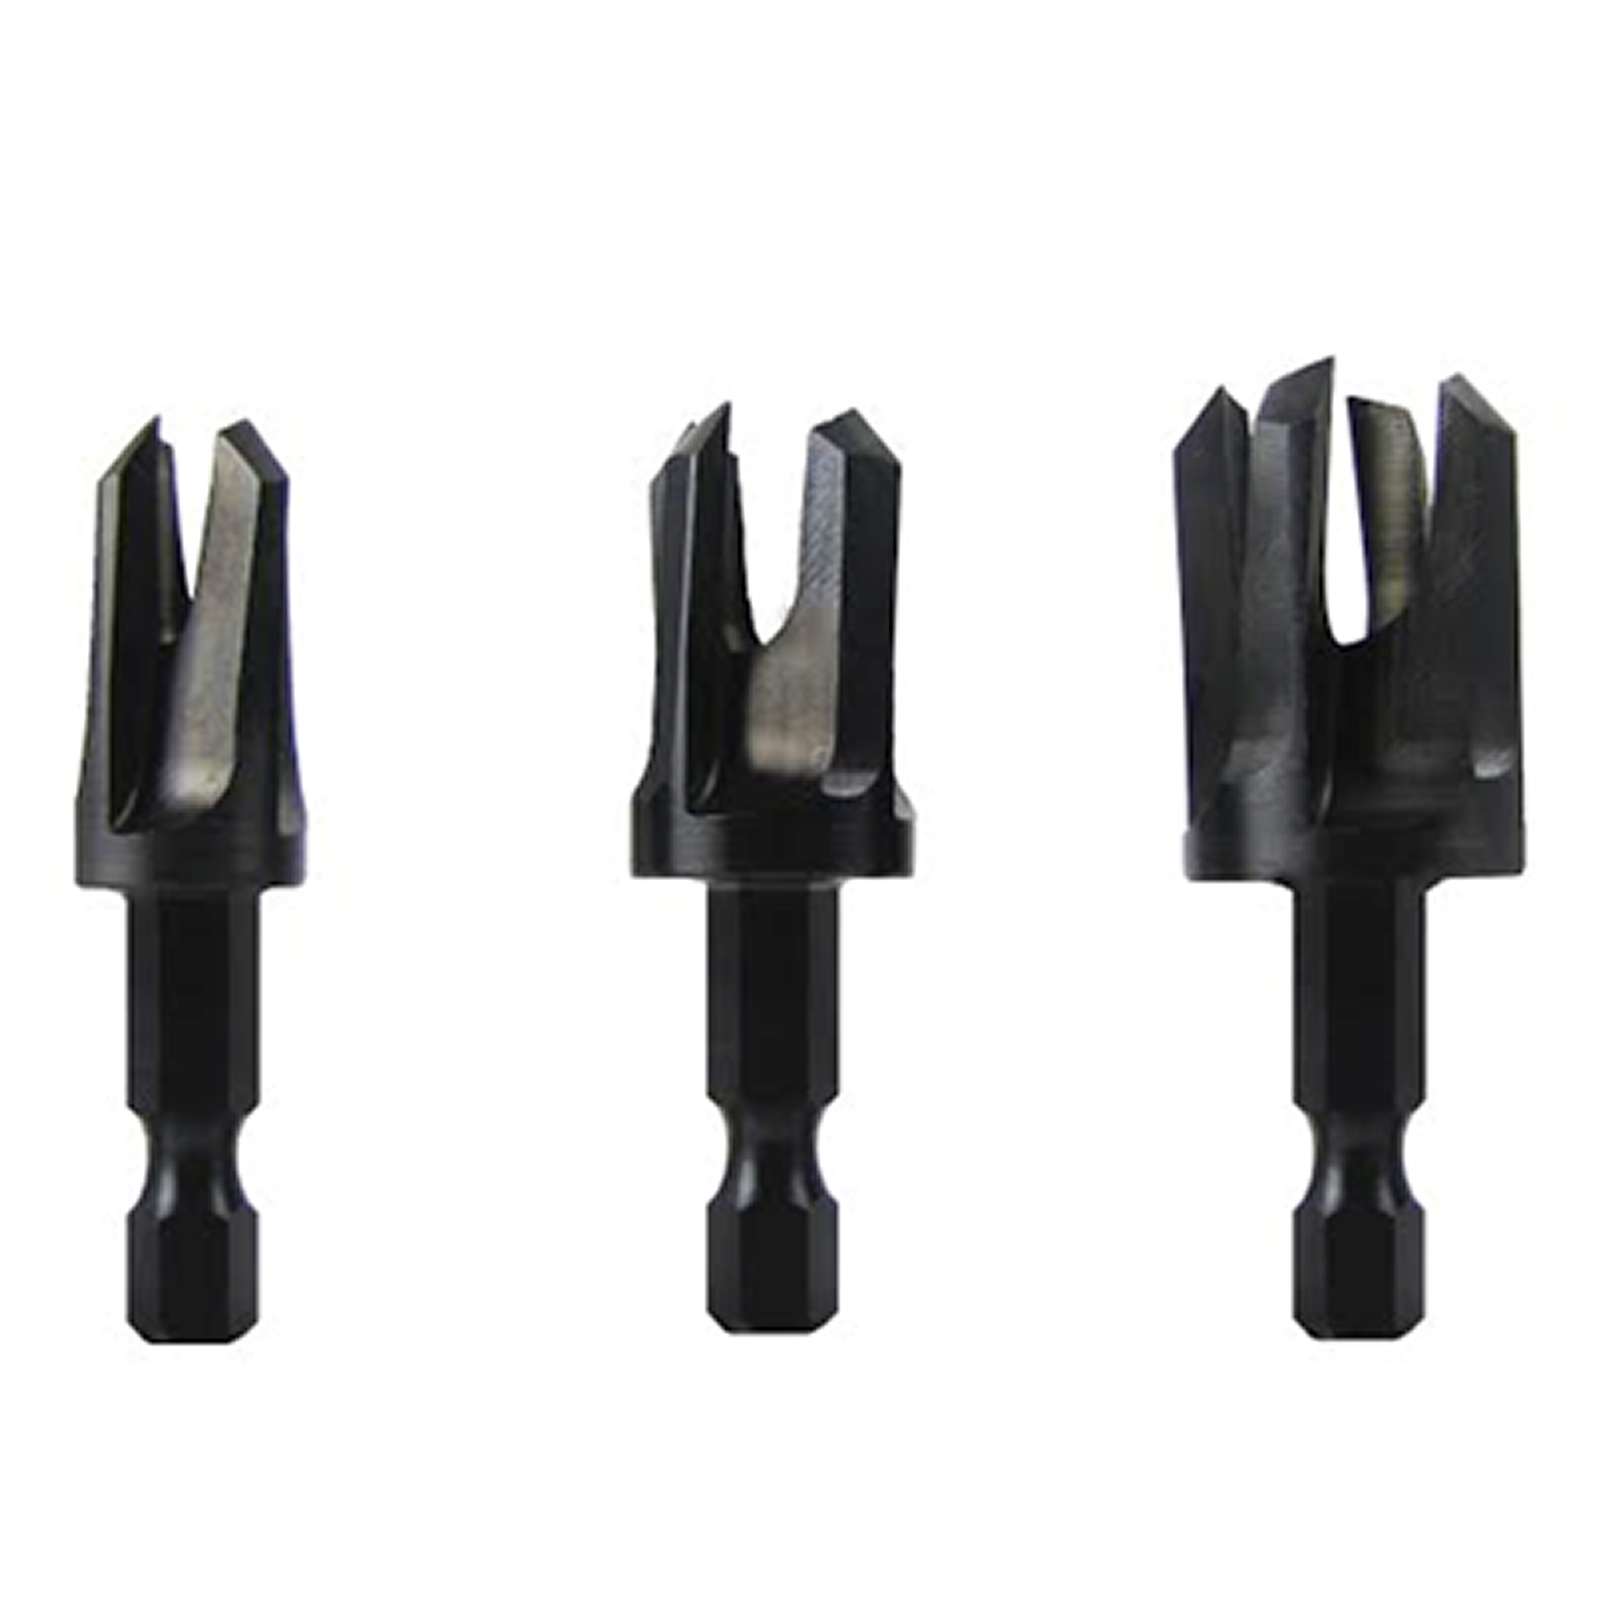 SNAPPY TOOLS Snappy 3 Piece Tapered Plug Cutter Set PartNumber: 00912274000P KsnValue: 6793034 MfgPartNumber: 43300